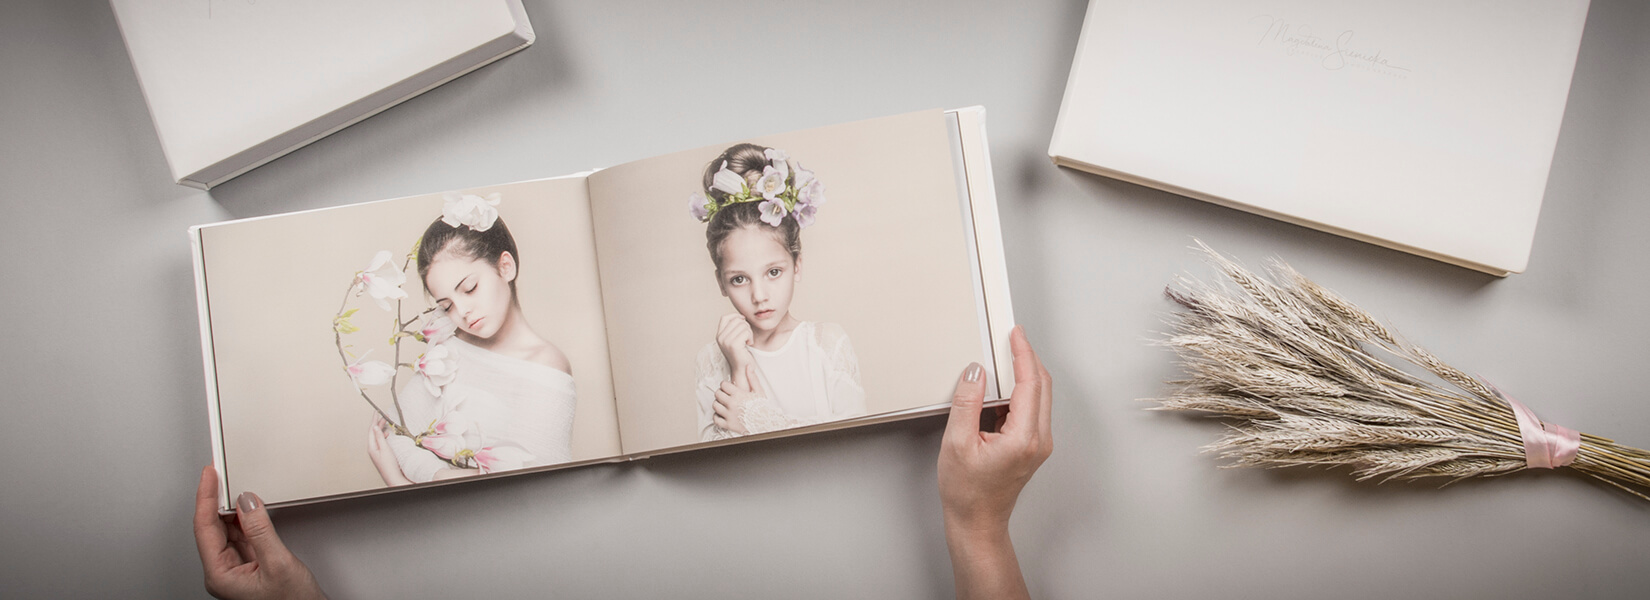 Photo Book PRO Professional Photo Book Professional print quality nphoto 5